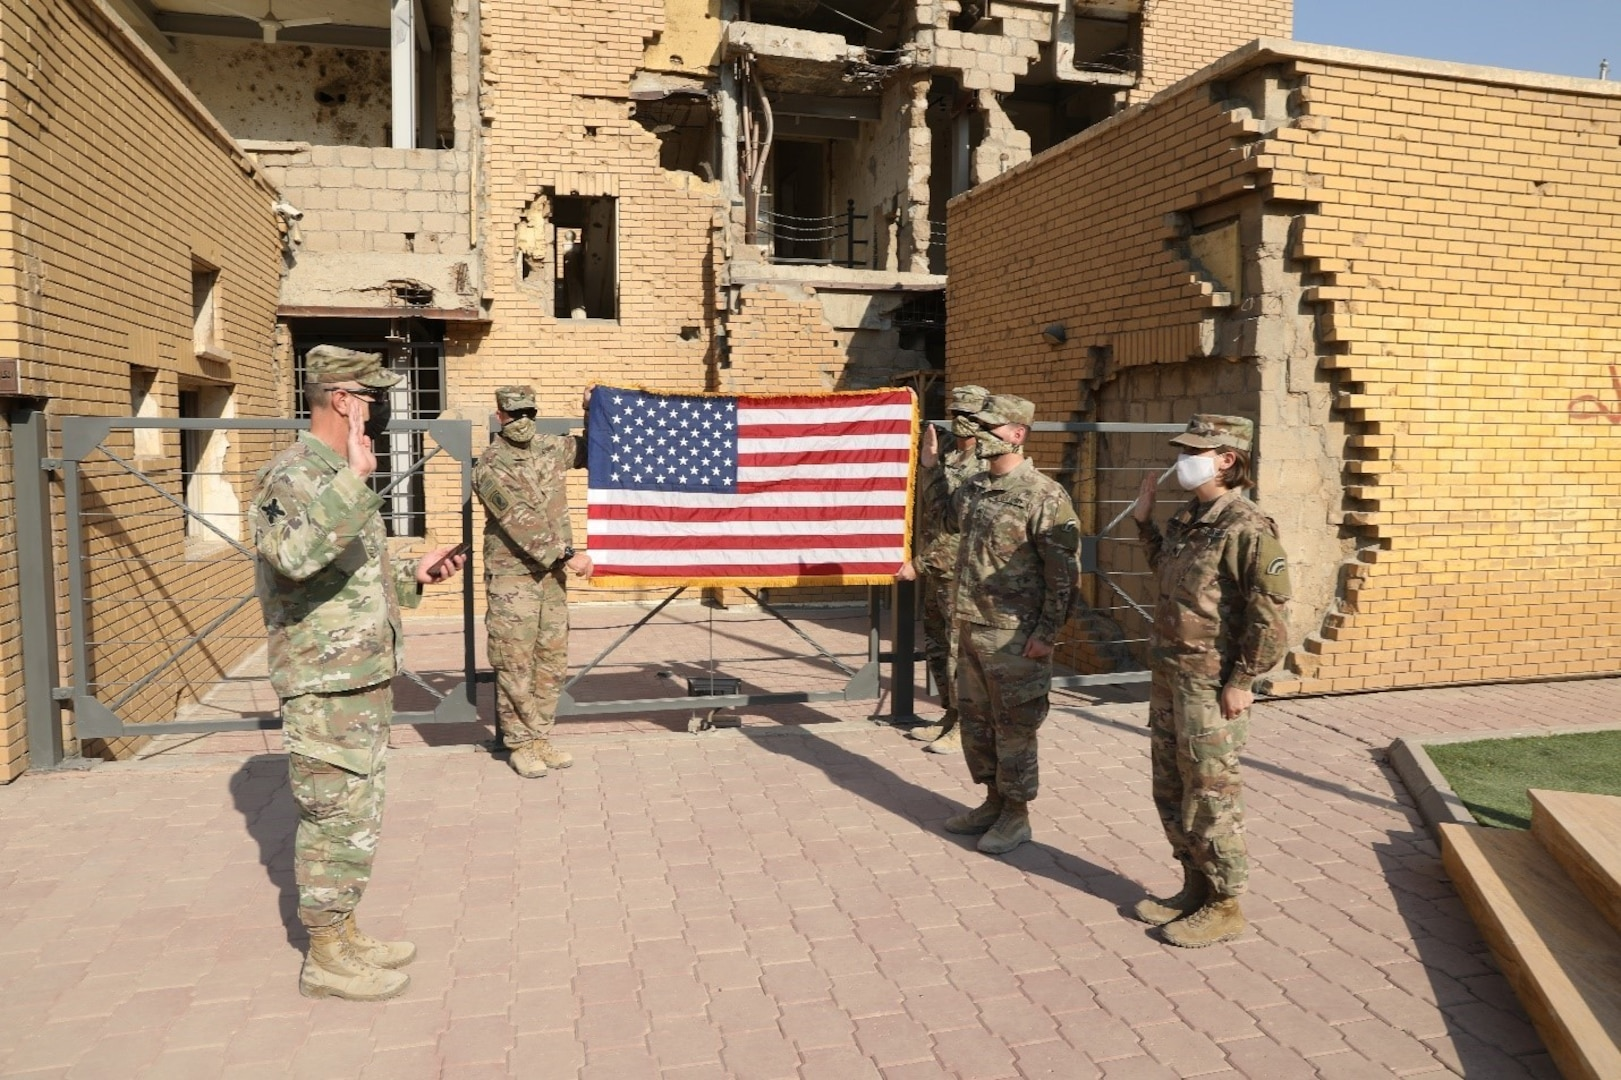 U.S. Army Staff Sgt. A. Jared Forst and Sgt. Becca Meerwarth take their oath of reenlistment Oct. 30, 2020, in Kuwait.